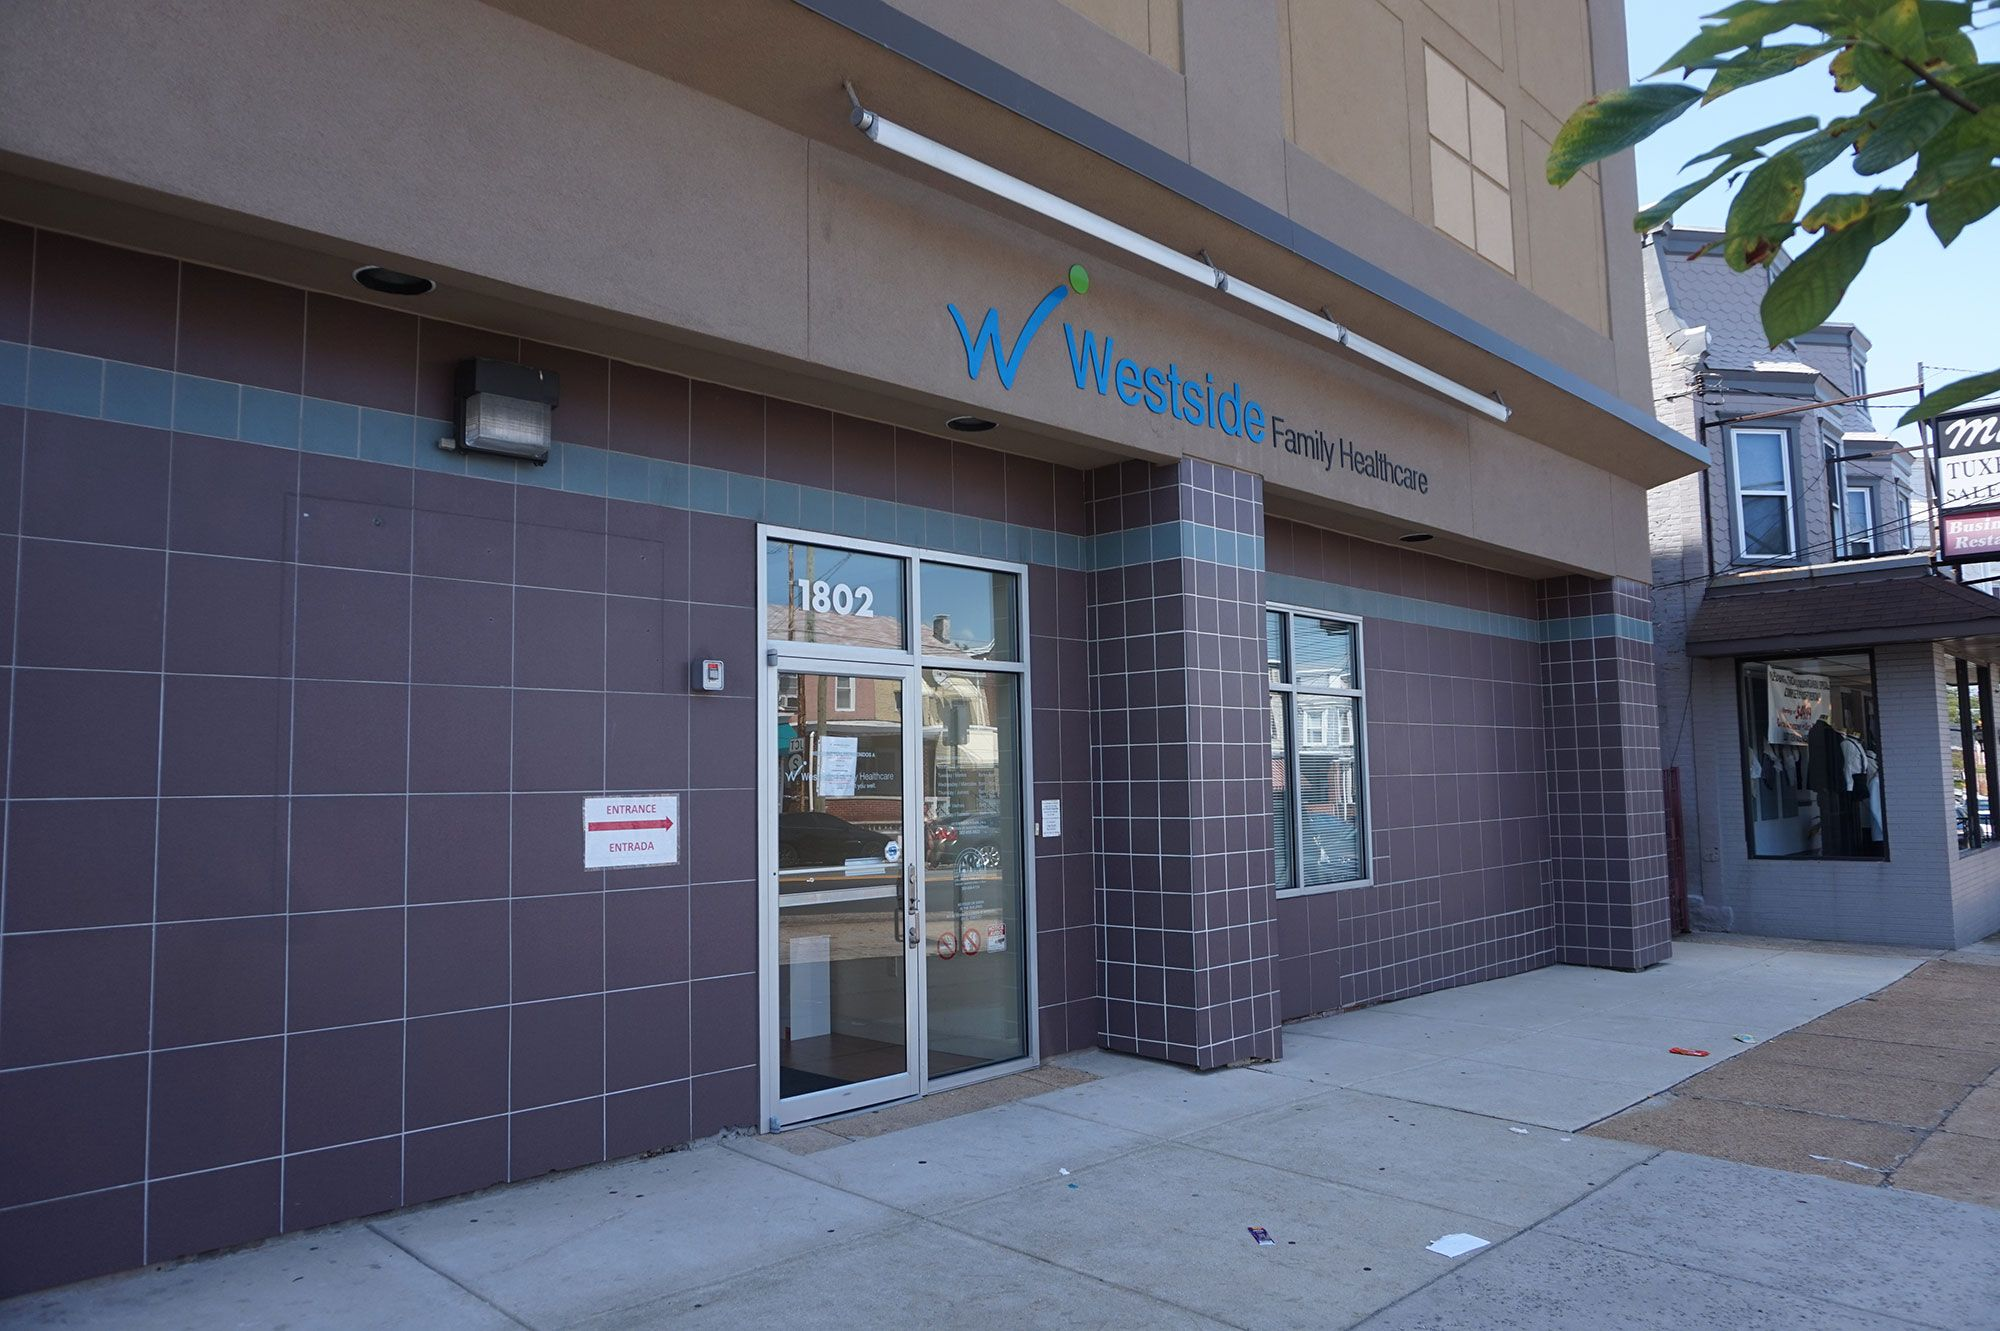 Westside Family Healthcare - Wilmington